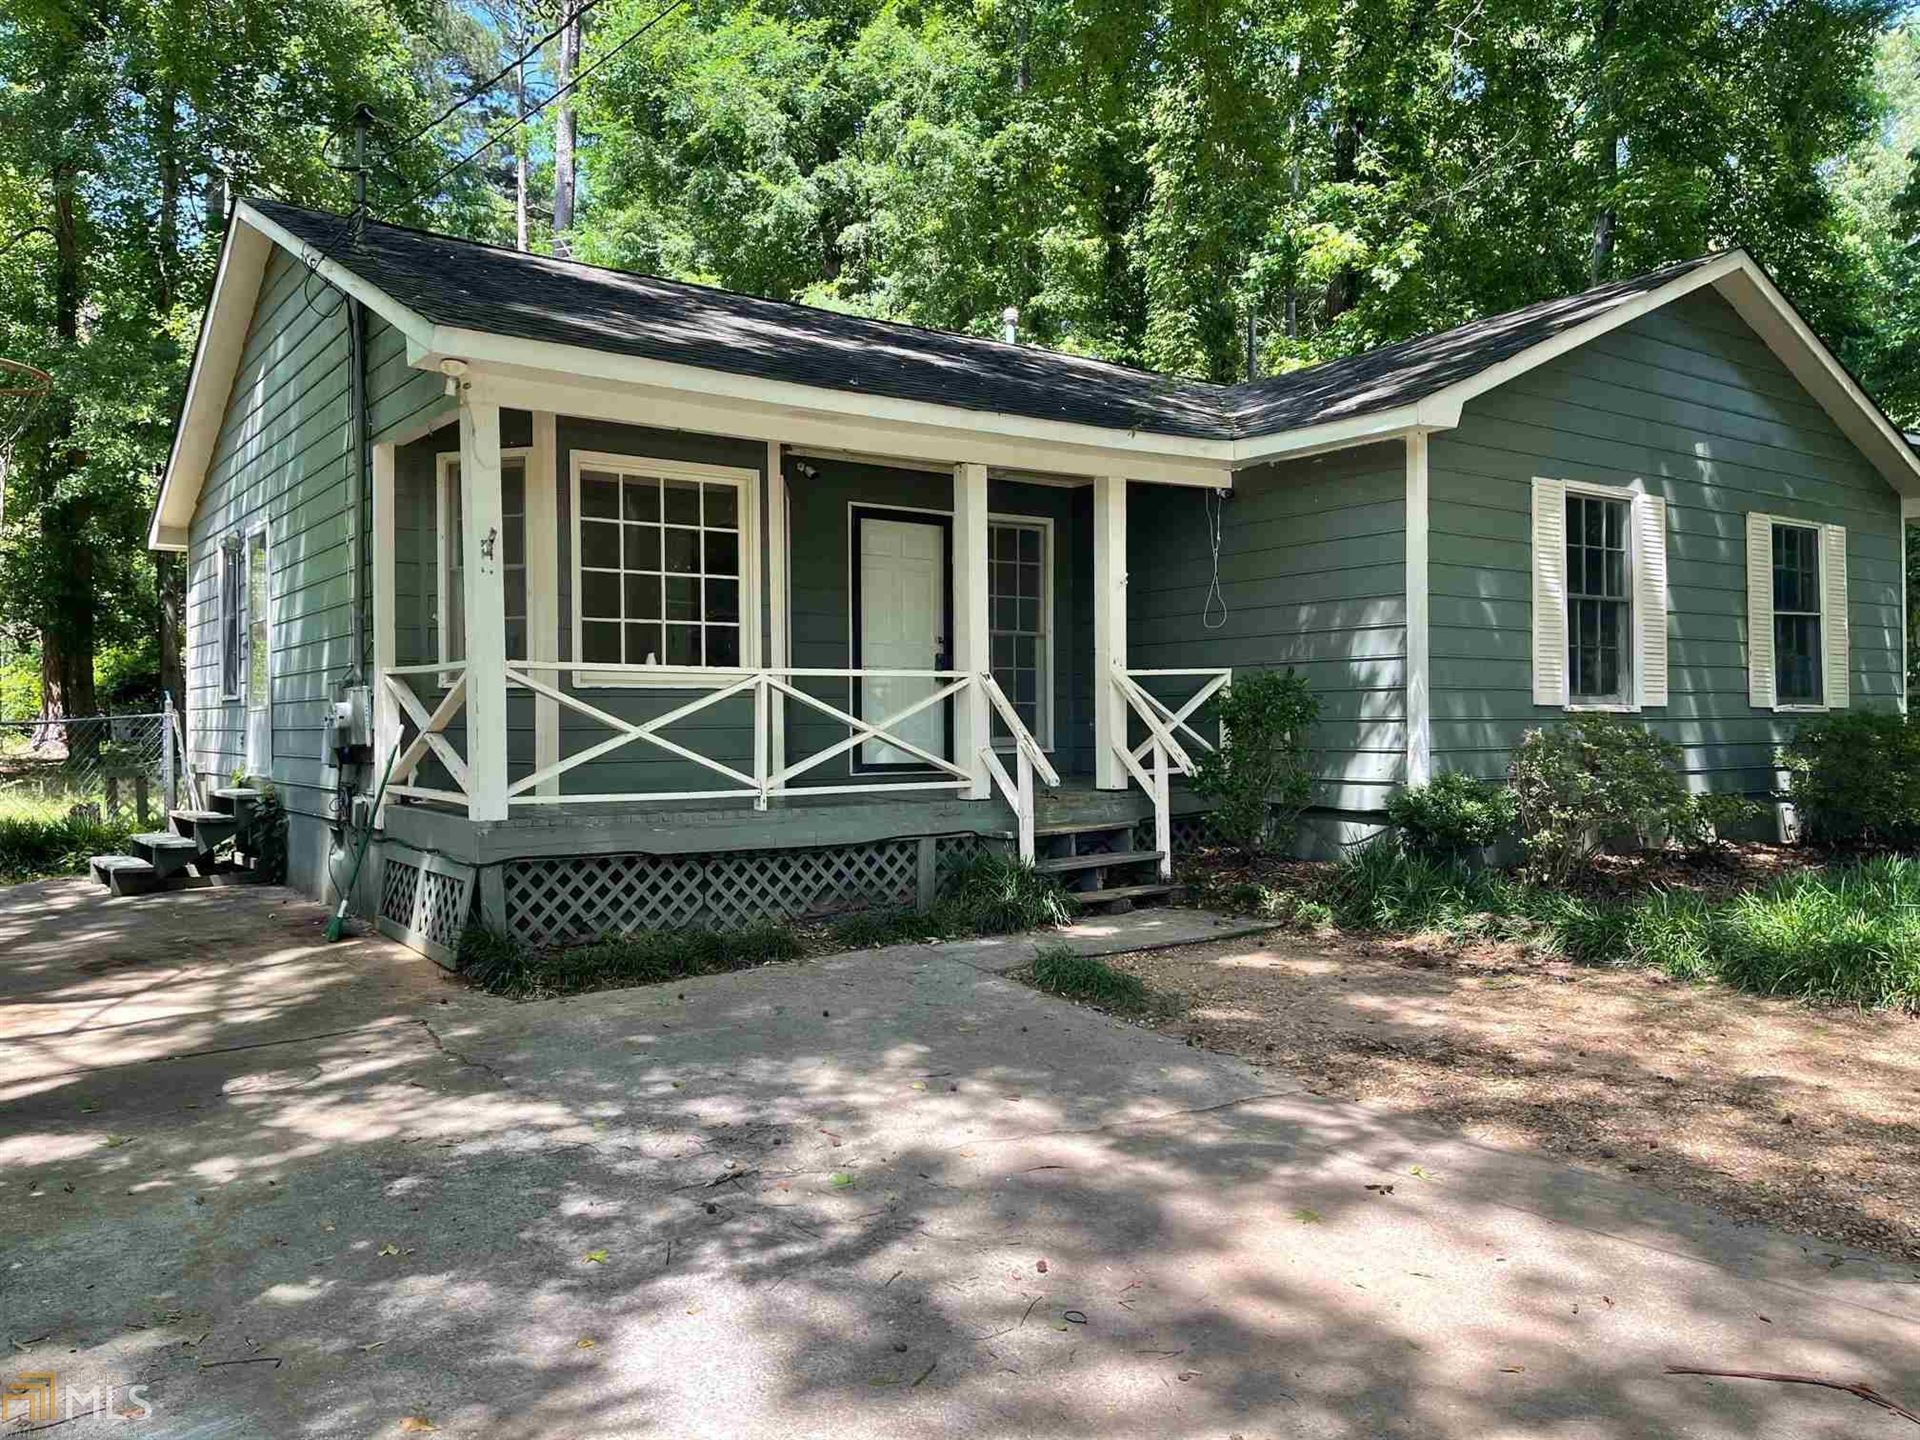 624 Will Scarlet Way, Macon, GA 31220 - MLS#: 8952814